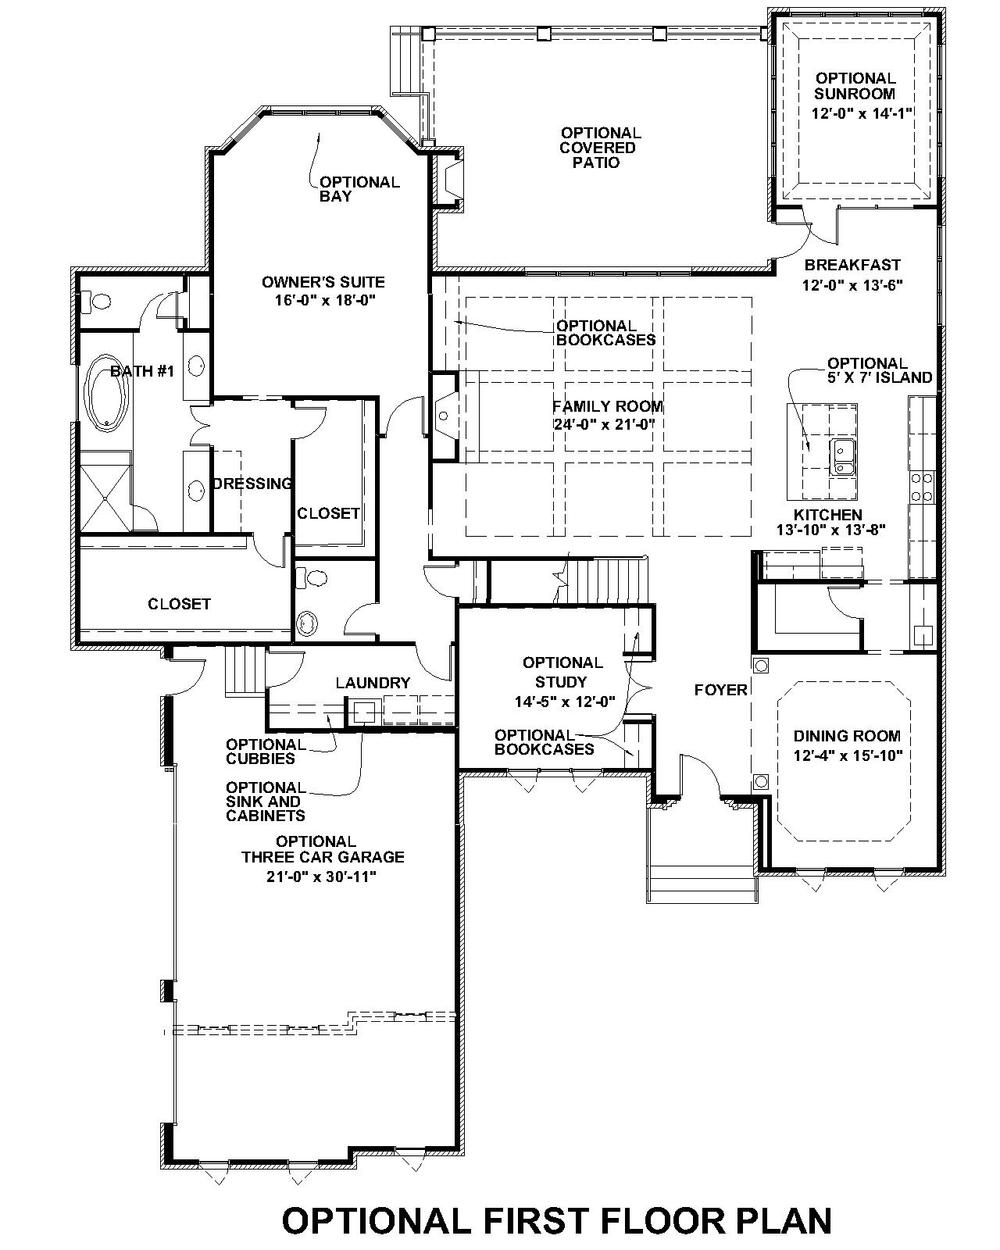 Lochbriar Optional First Floor Plan 1